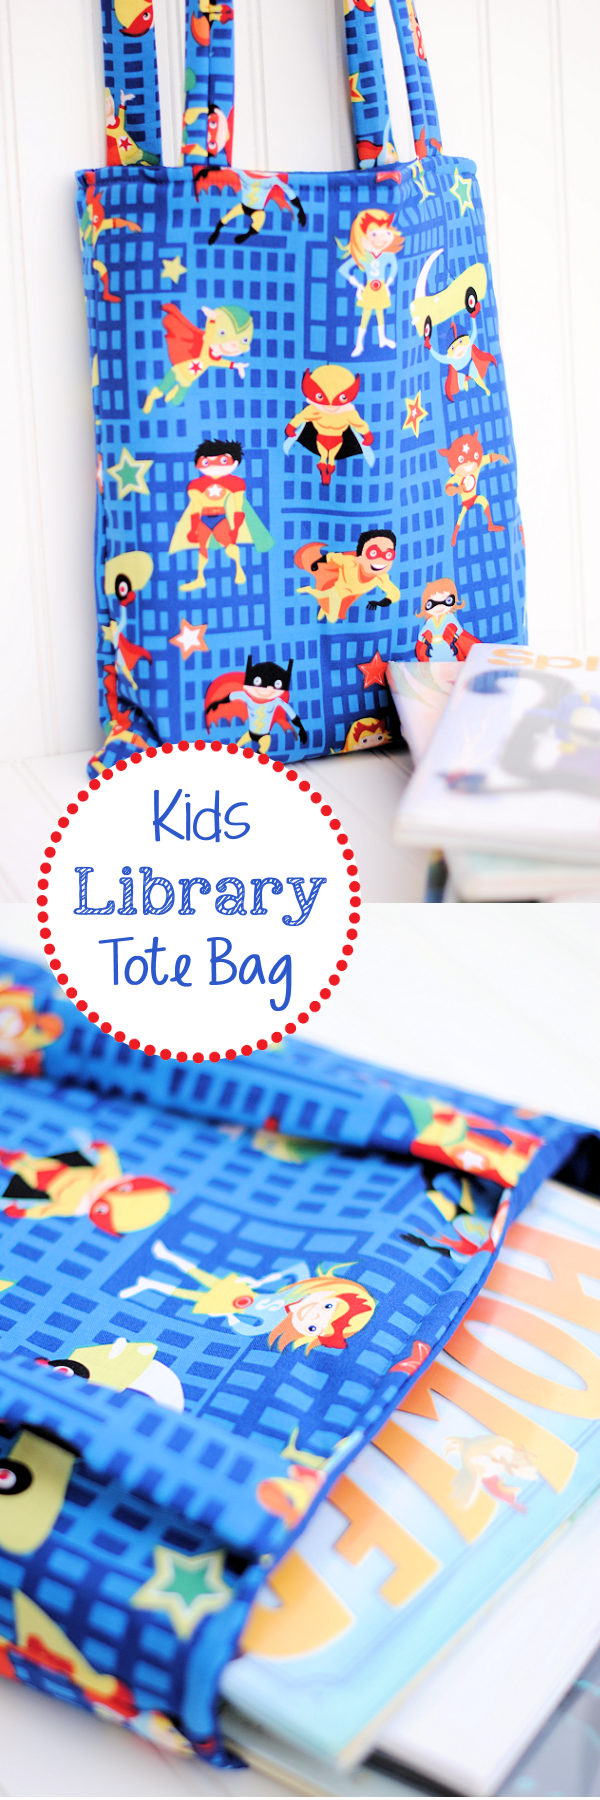 Easy Kids Library Bag Tutorial-This easy kid's tote bag pattern is simple to follow, easy to sew and fun to carry to the library or wherever you are going with the kids! #kids #sew #sewing #pattern #bags #patterns